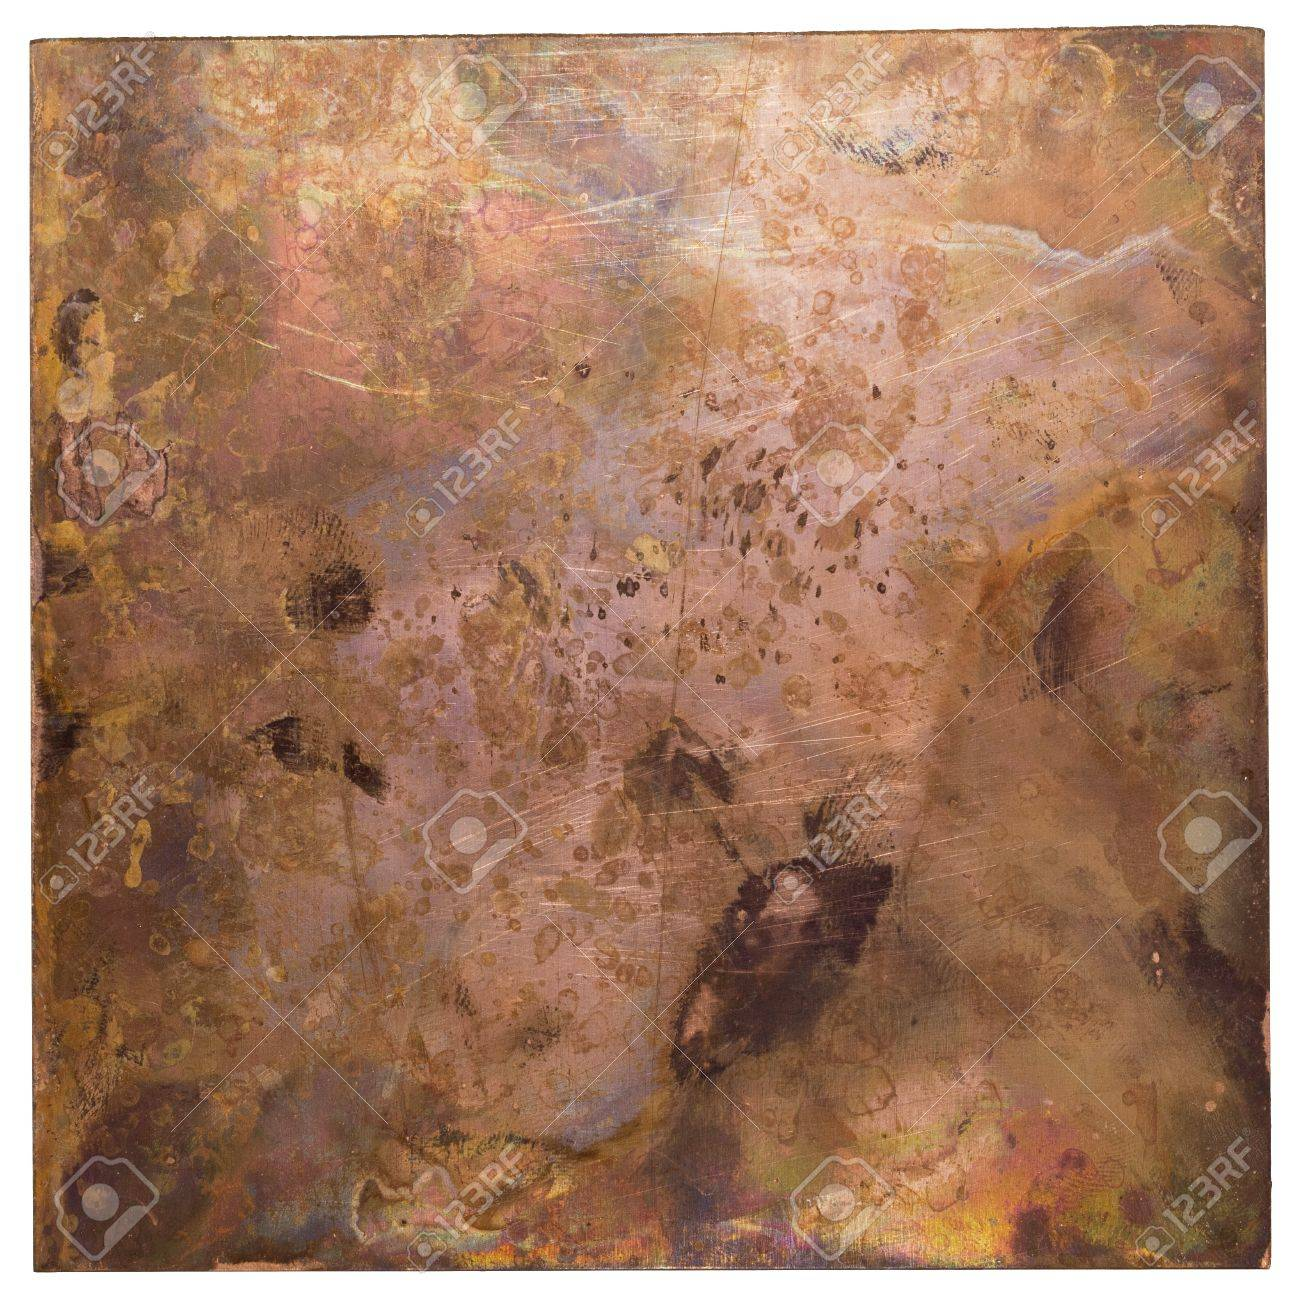 Copper plate texture, old metal background Stock Photo - 17977266